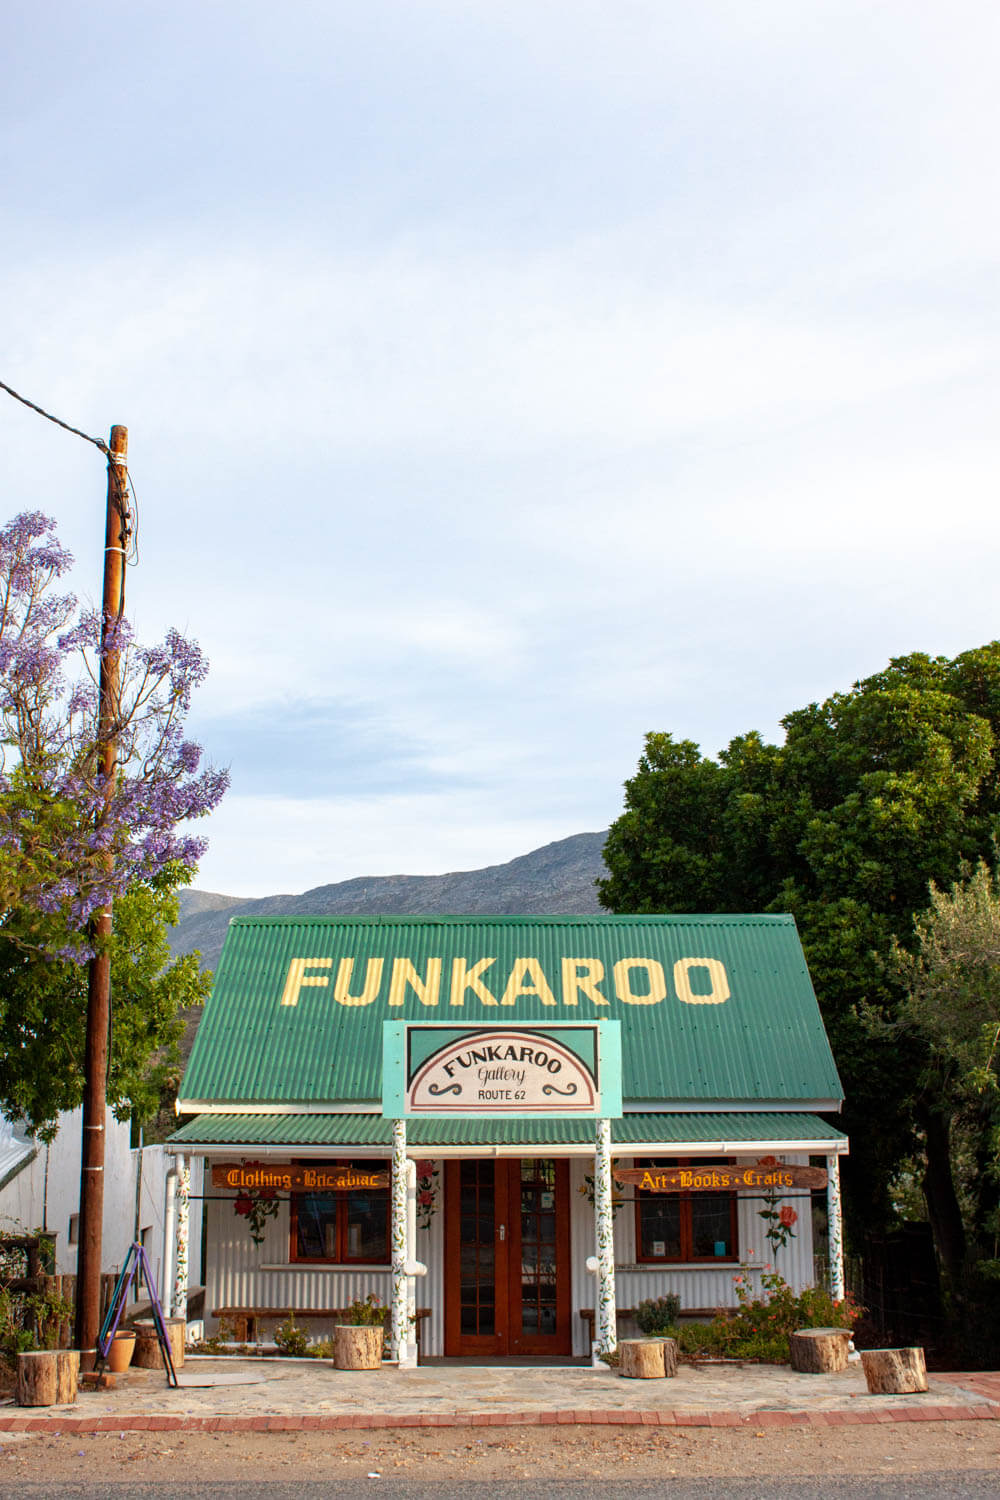 Funkaroo shop in Barrydale